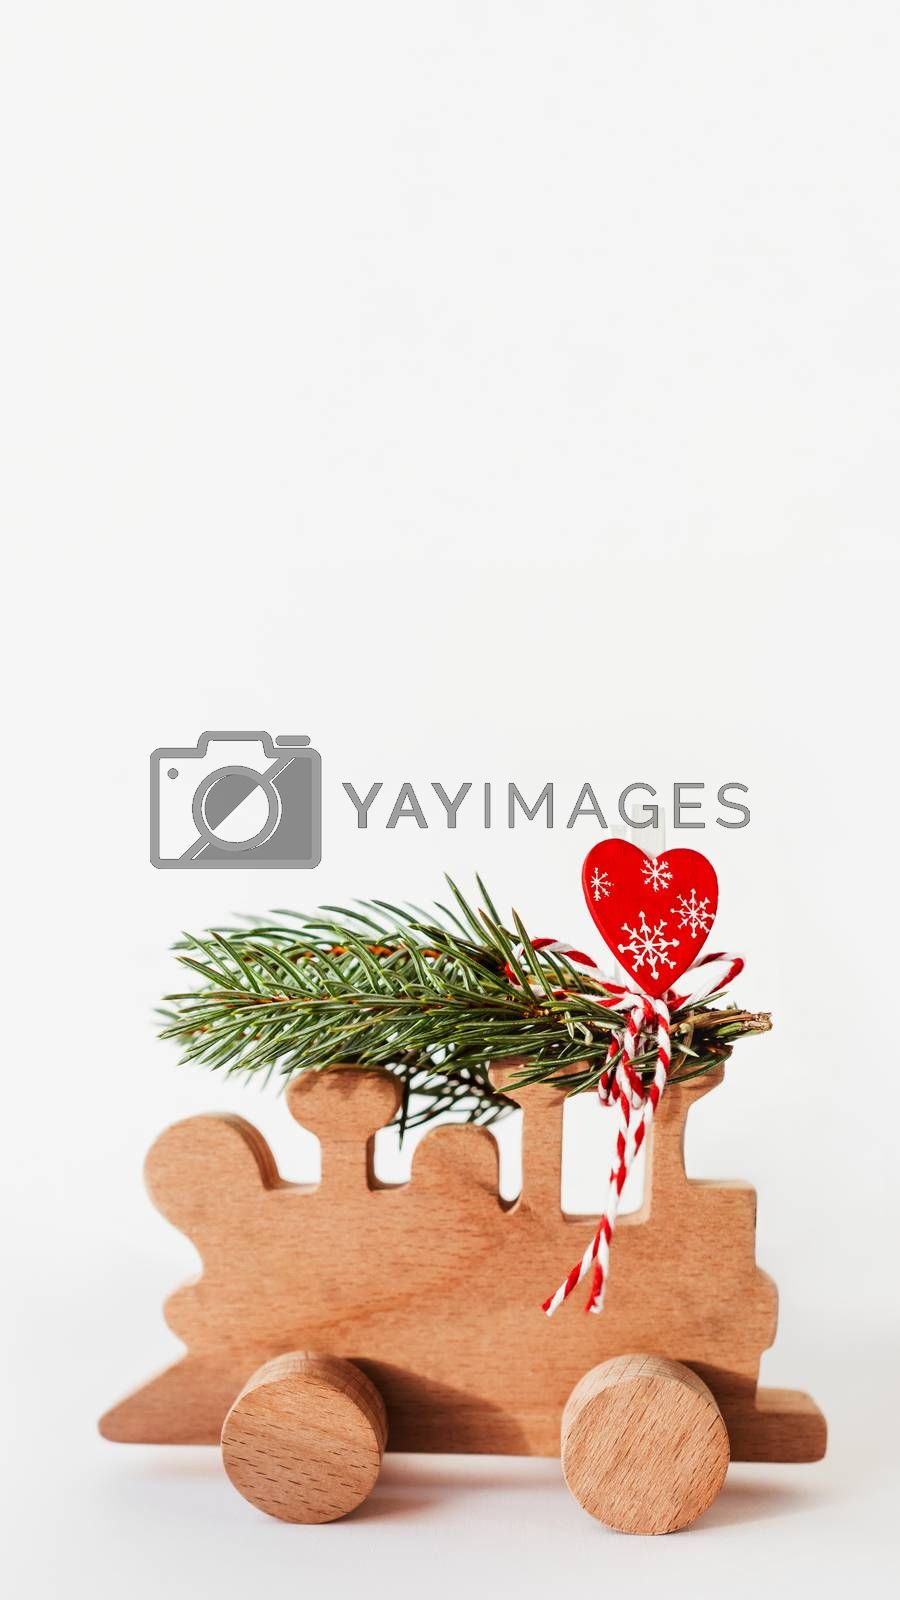 Wooden train with tied fir tree branches and red heart decoratio by aksenovko